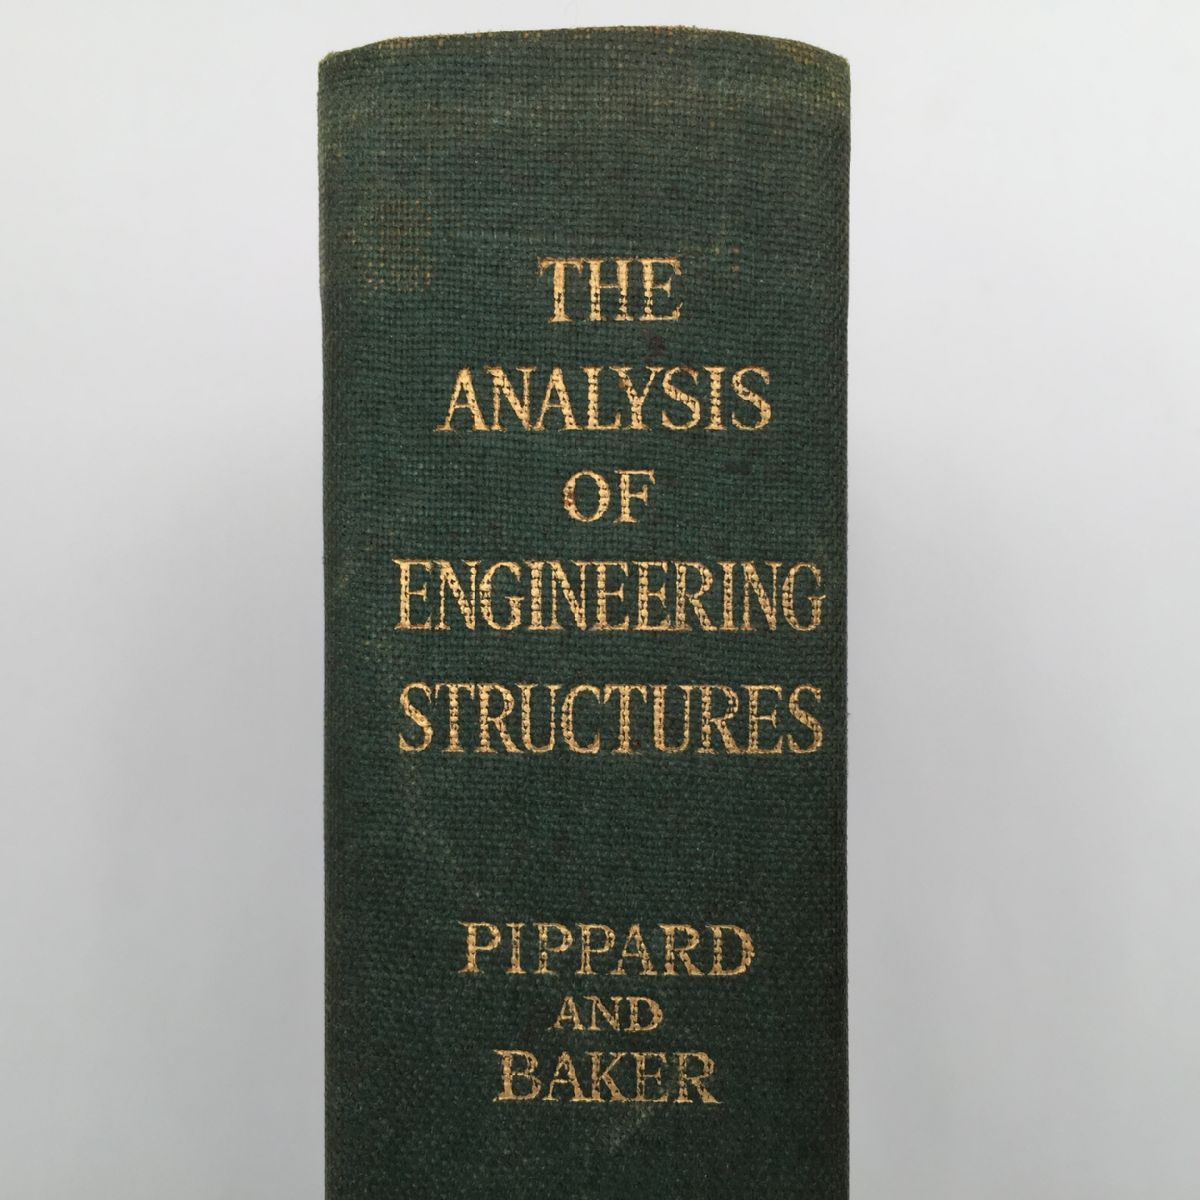 The Analysis of Engineering Structures